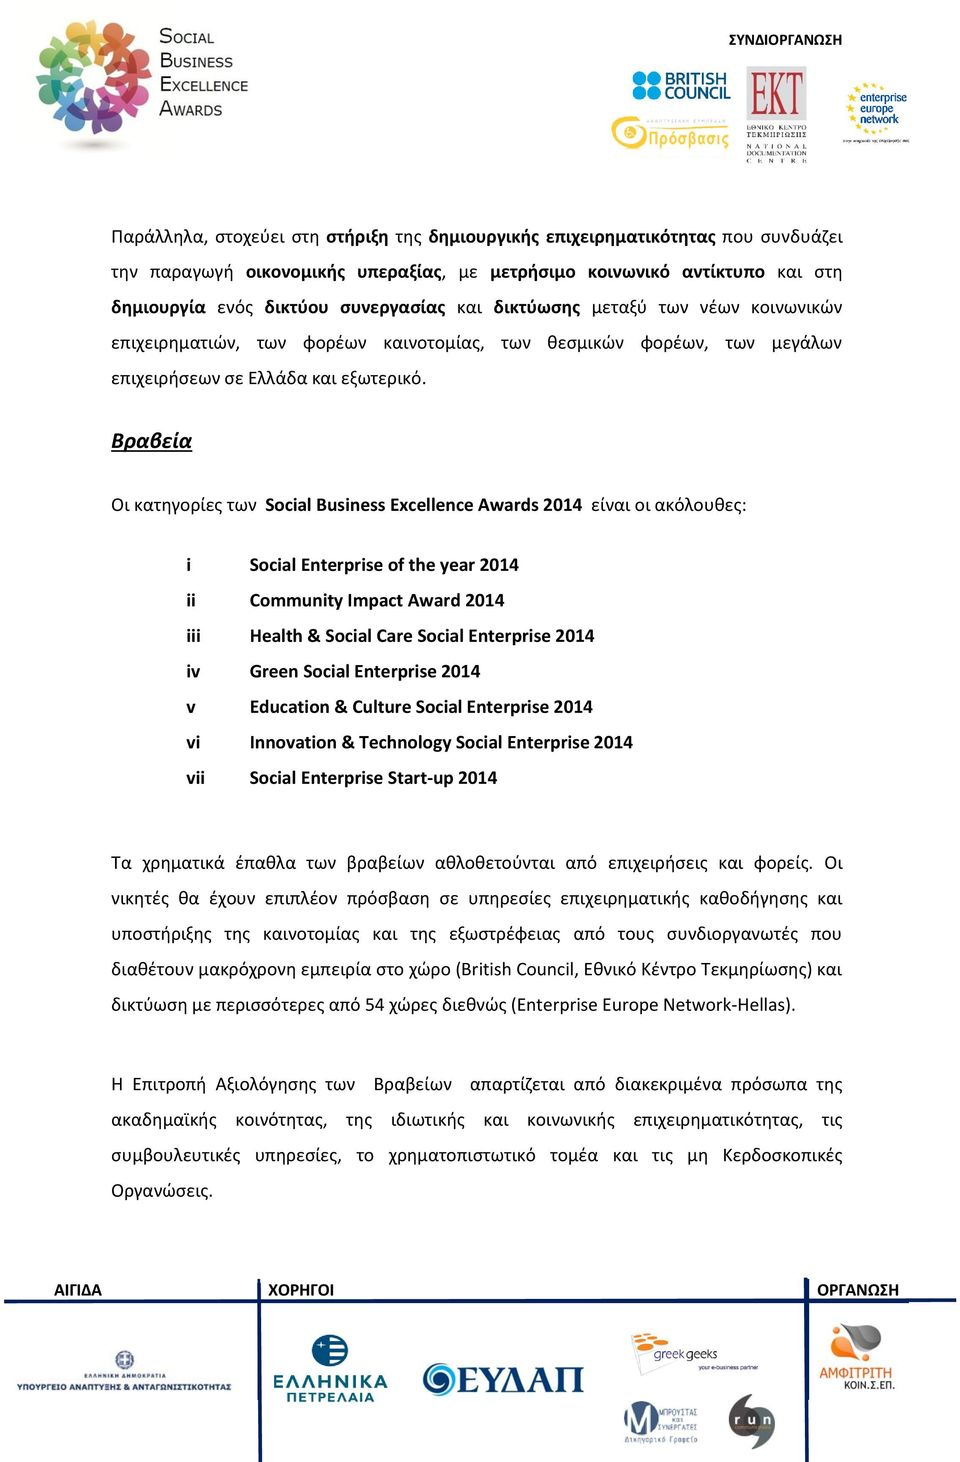 Βραβεία Οι κατηγορίες των Social Business Excellence Awards 2014 είναι οι ακόλουθες: i Social Enterprise of the year 2014 ii Community Impact Award 2014 iii Health & Social Care Social Enterprise